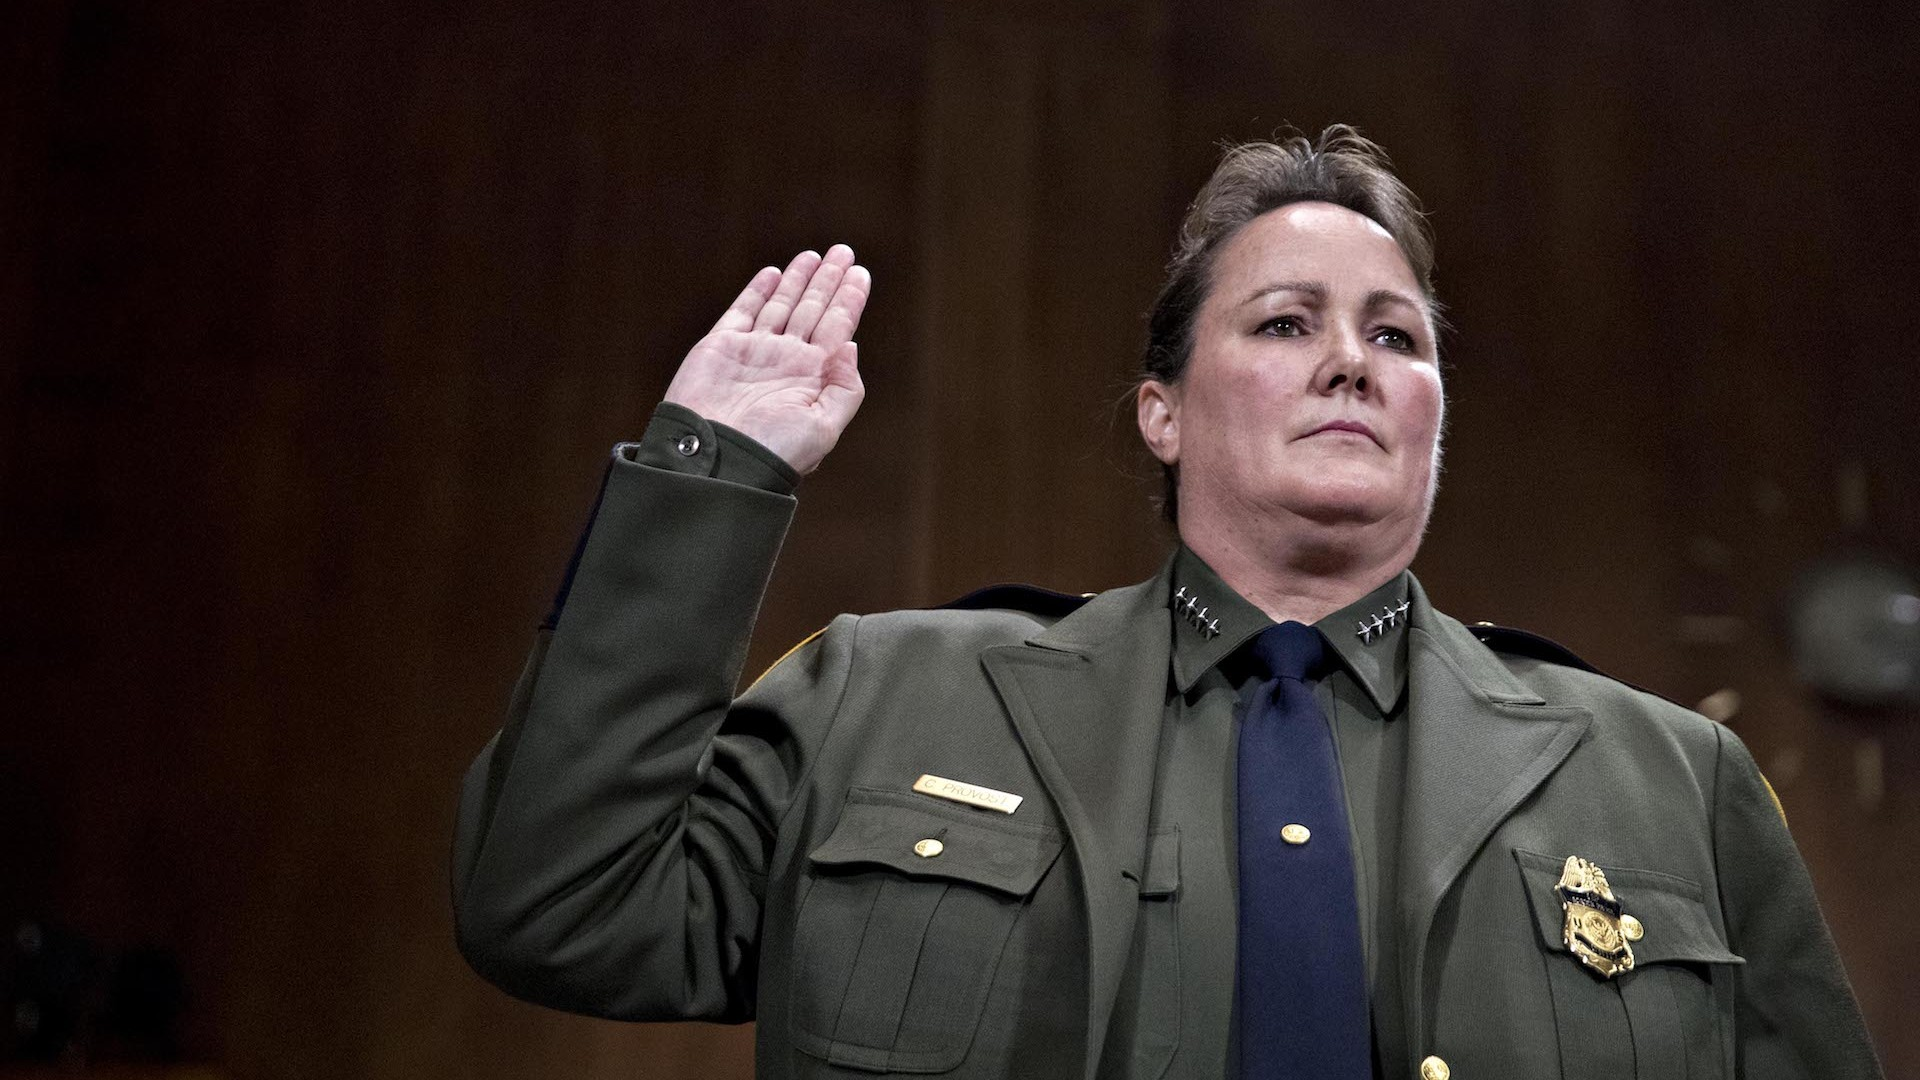 Border Patrol Chief Denies Knowing About Vulgar Posts in Facebook Group She Was a Member Of